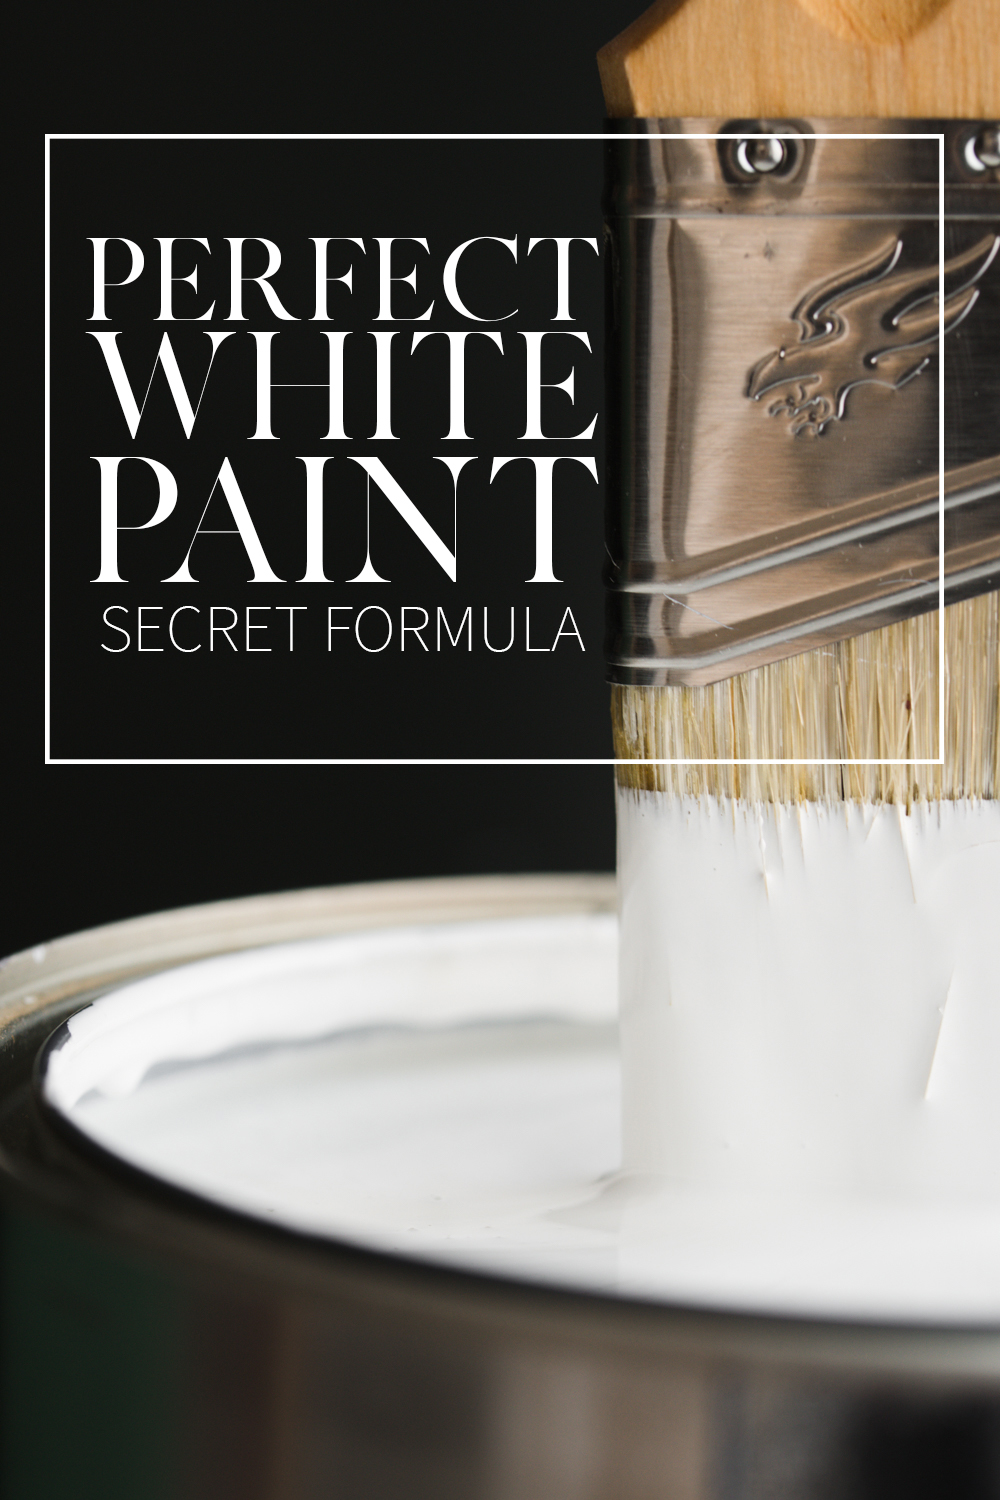 This is the BEST white paint color! It's a custom mix that never looks blueish, or greenish, or yellowish. Its bright without being blinding. It is hands down the perfect white paint!